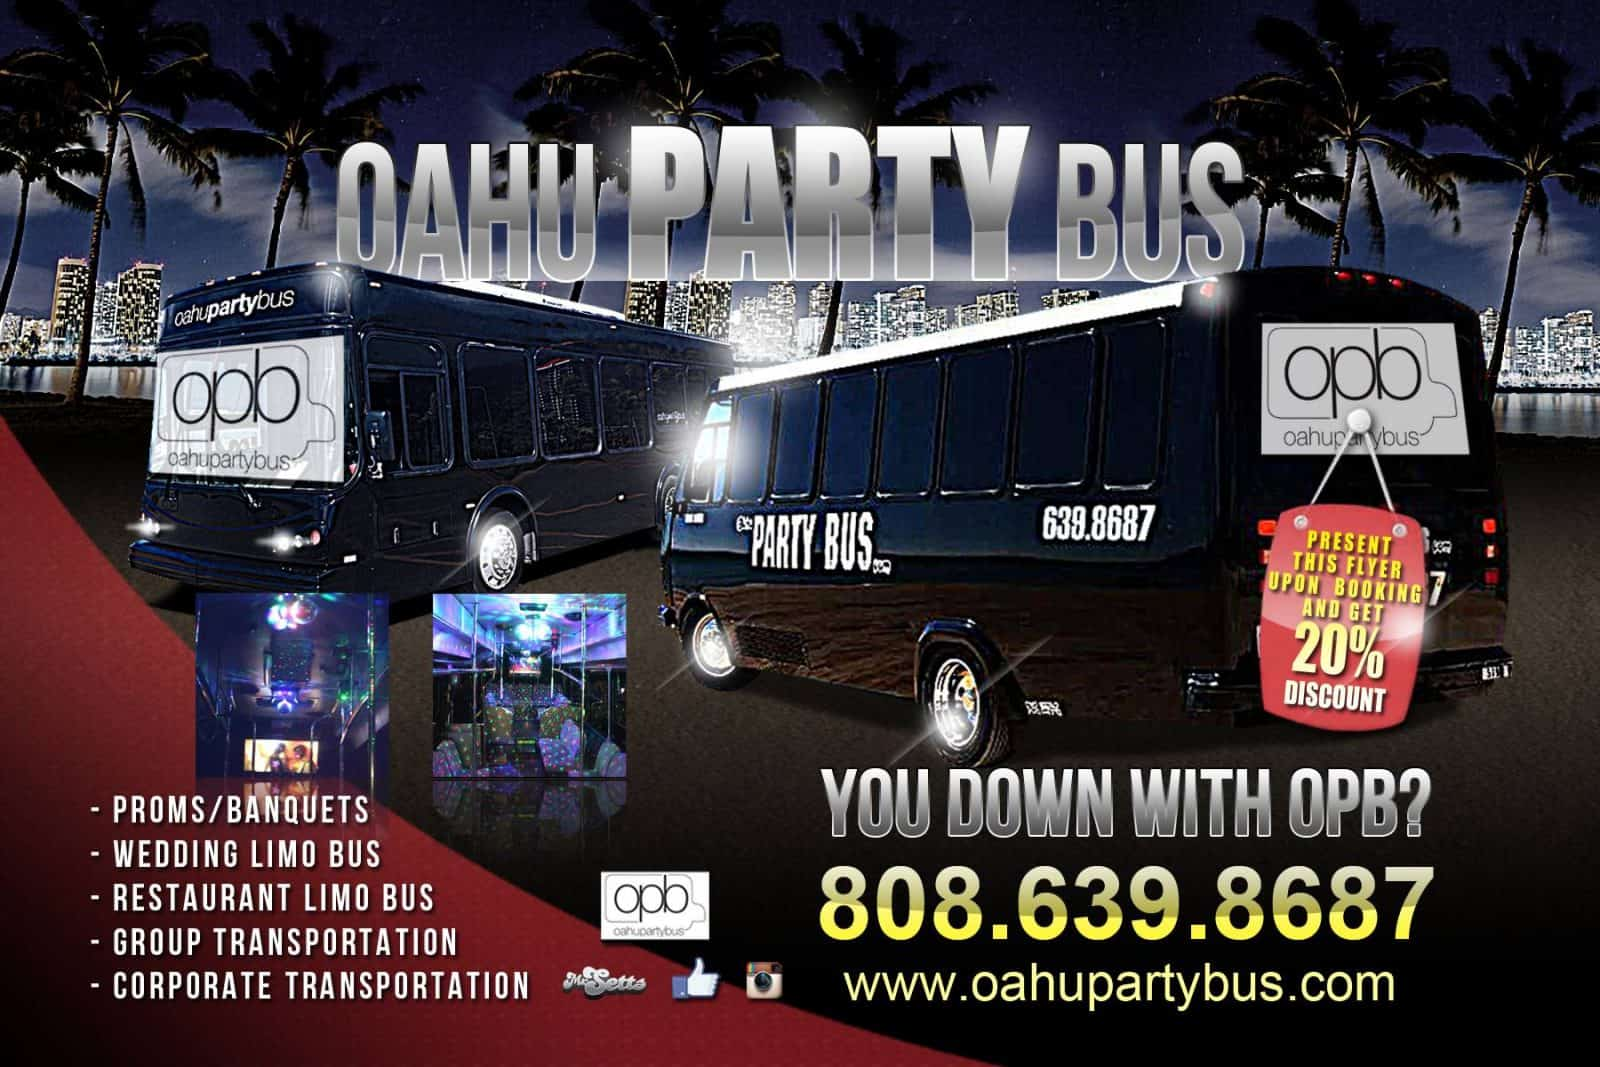 You Down with OPB? Proms, Banquets, wedding limo bus, restaurant limo, group transportation, corporate transportation hawaii